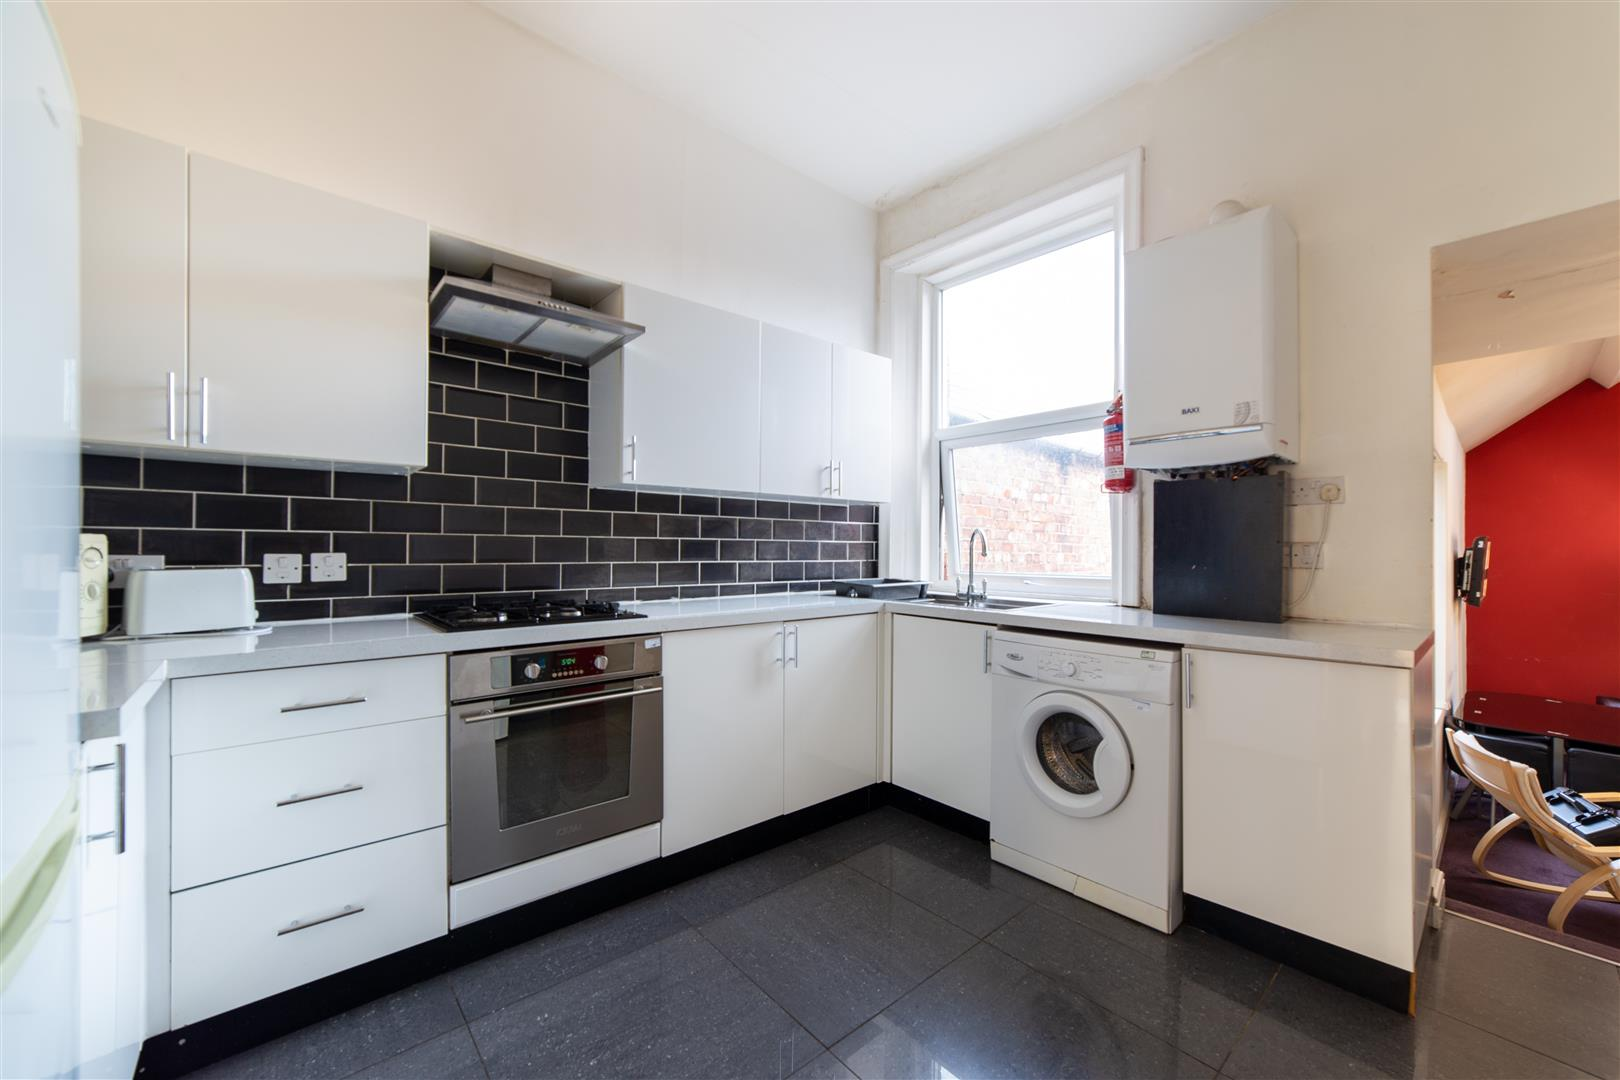 5 bed maisonette to rent in Newcastle Upon Tyne, NE6 5HL - Property Image 1